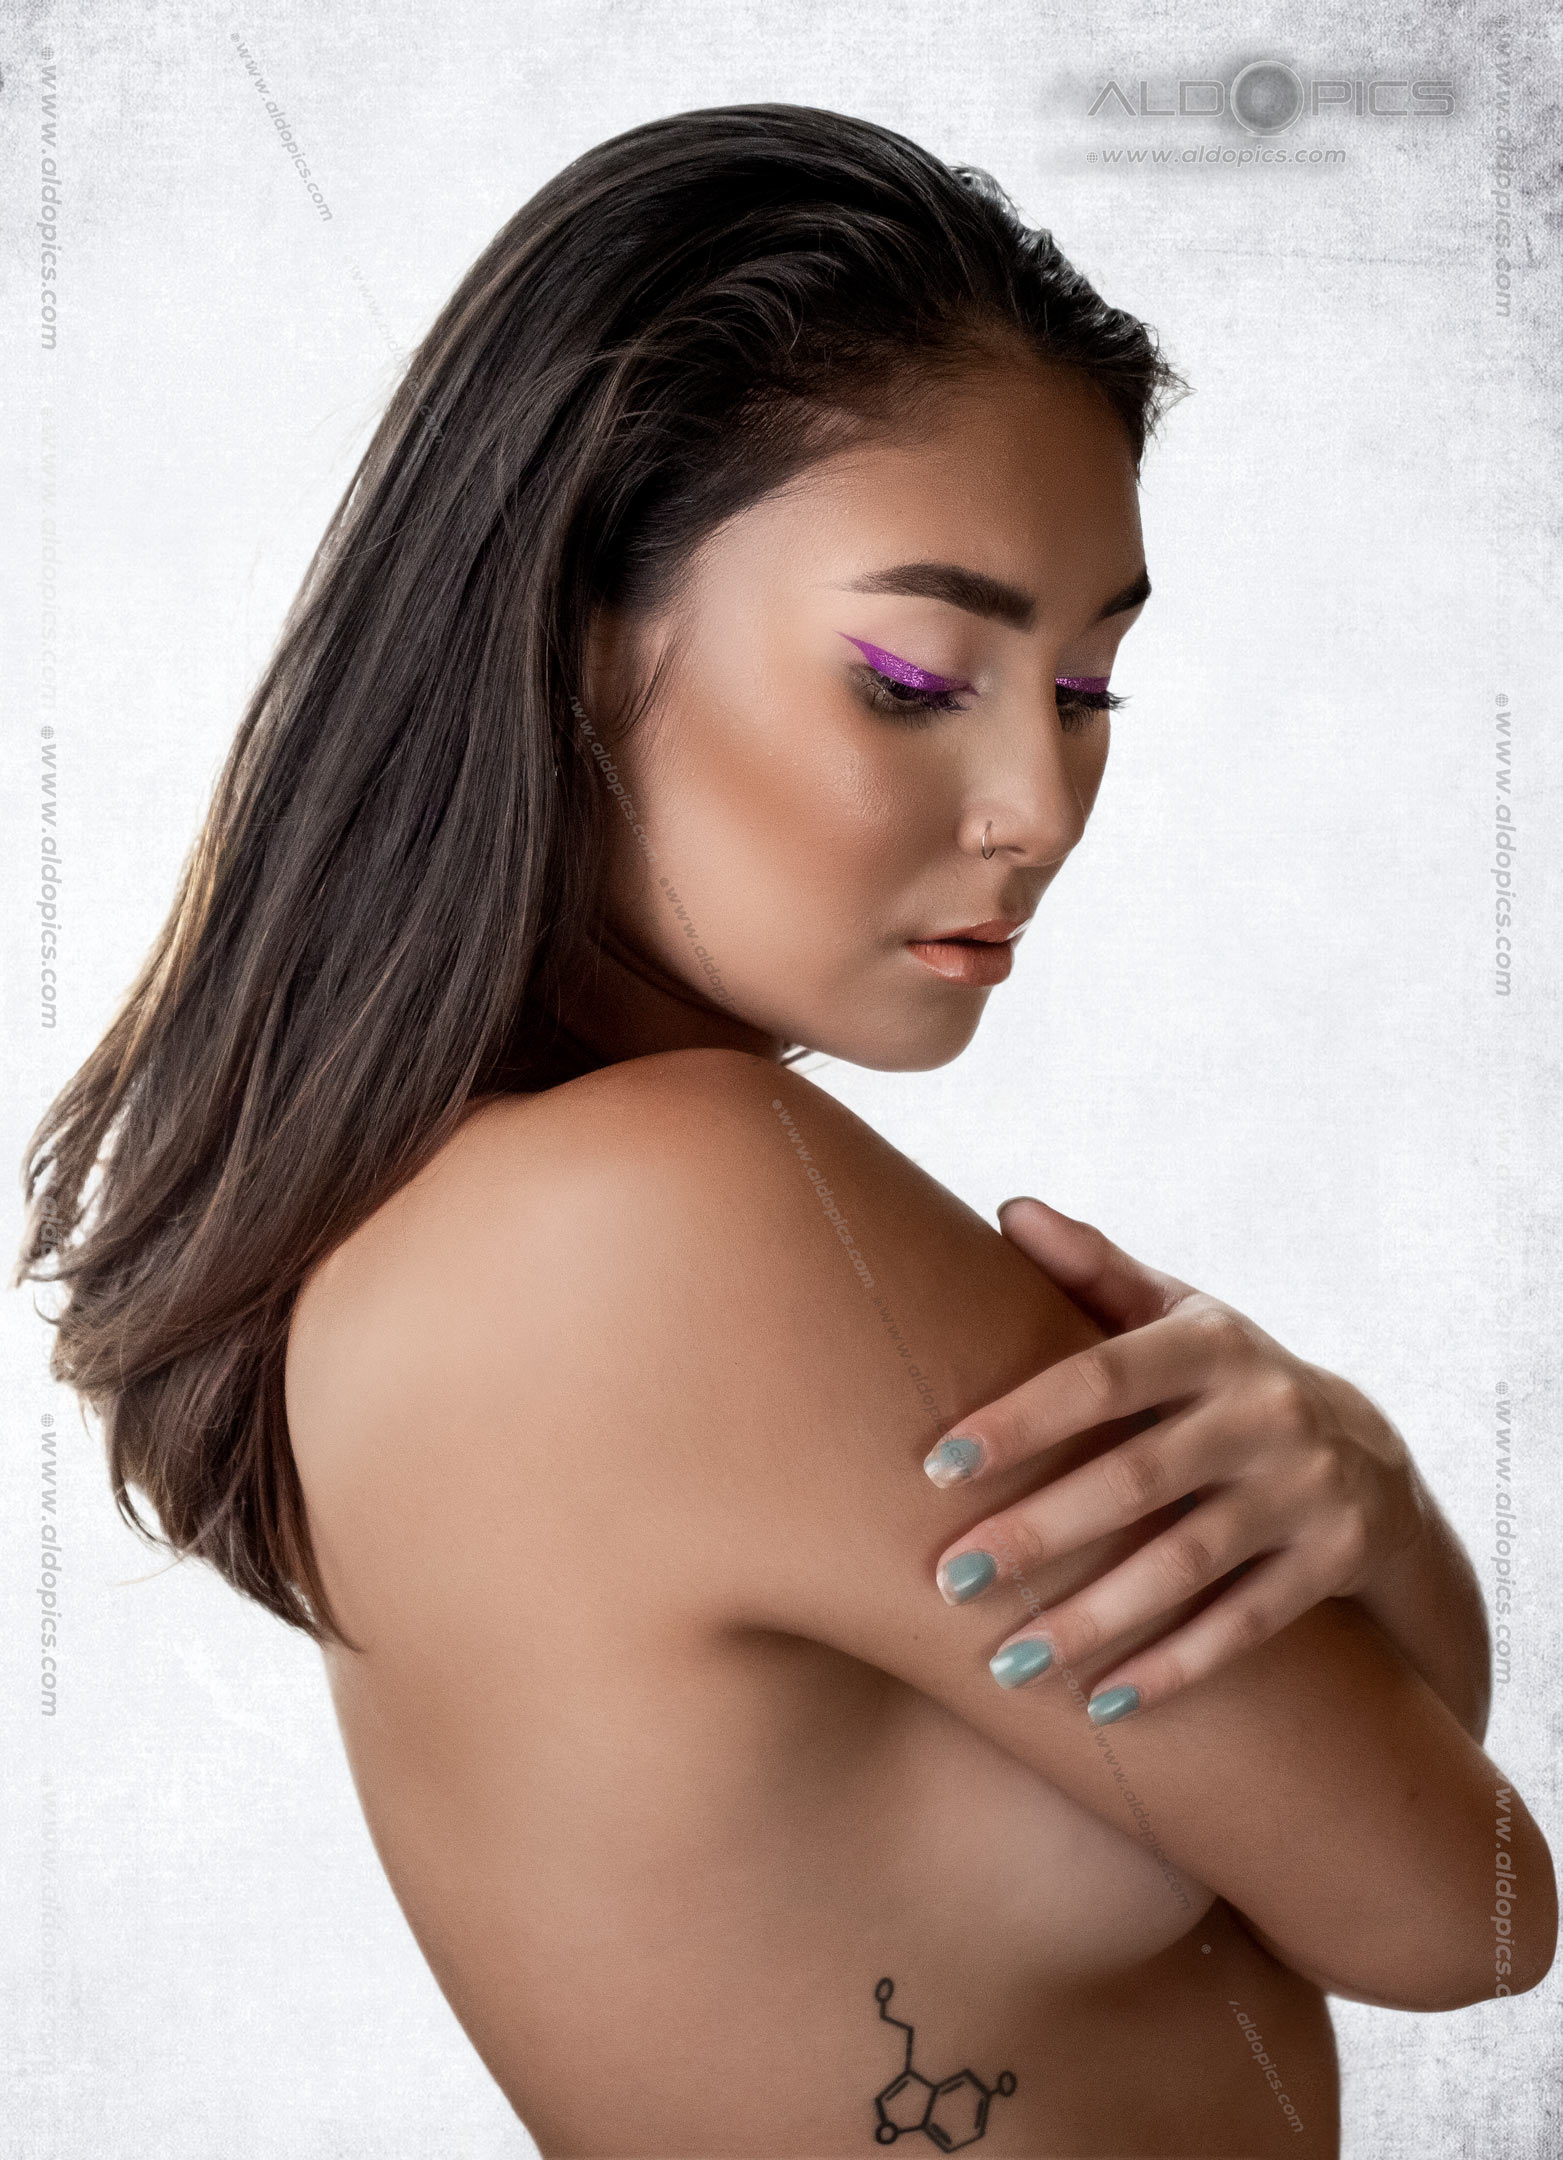 AldoPics Censored nude Beauty Shot